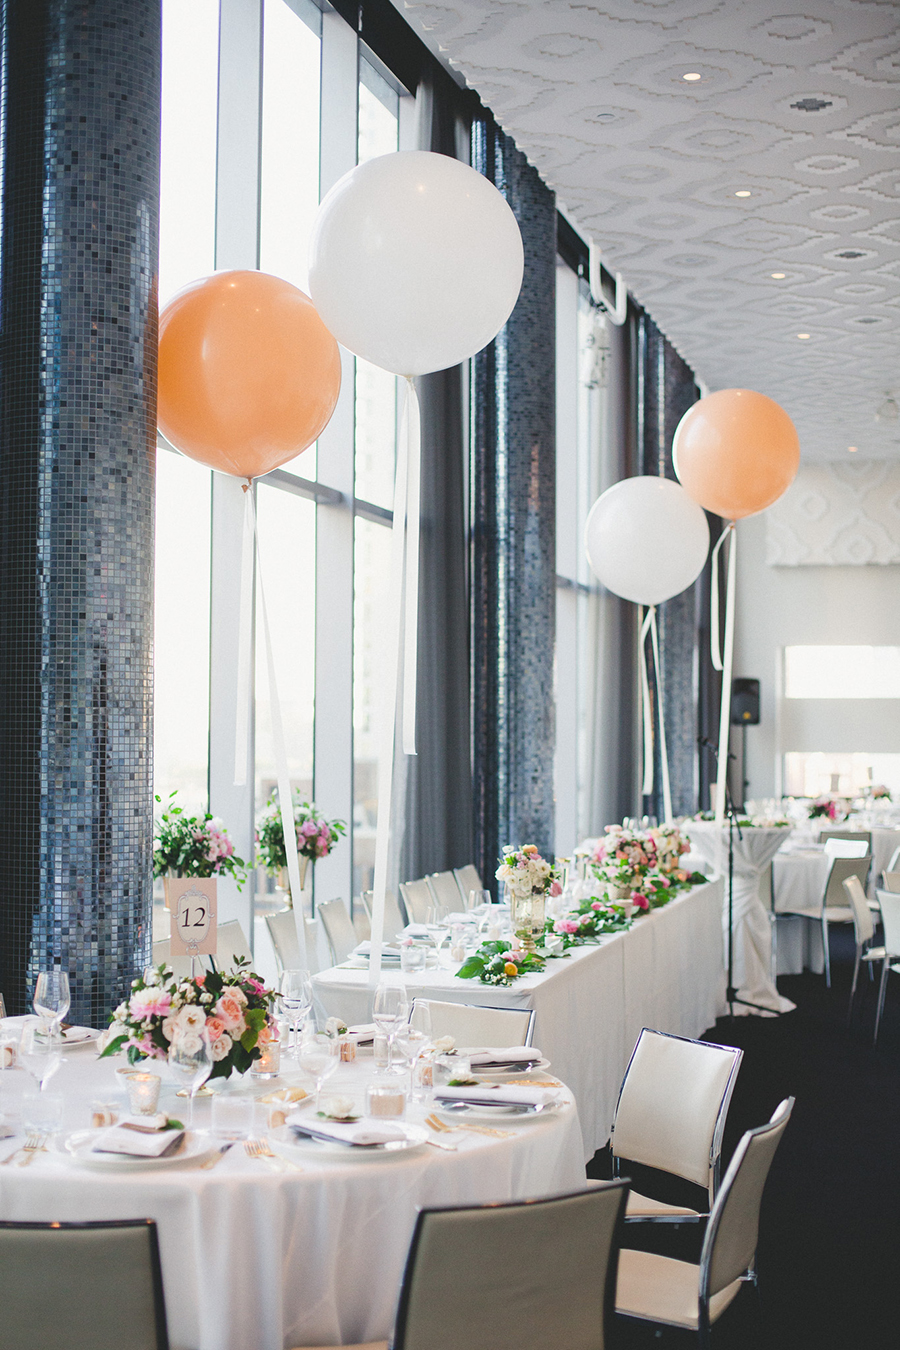 Lush pink floral and blush balloons at Malaparte, Toronto. See more at Rebecca Chan Weddings and Events: http://www.rebeccachan.ca